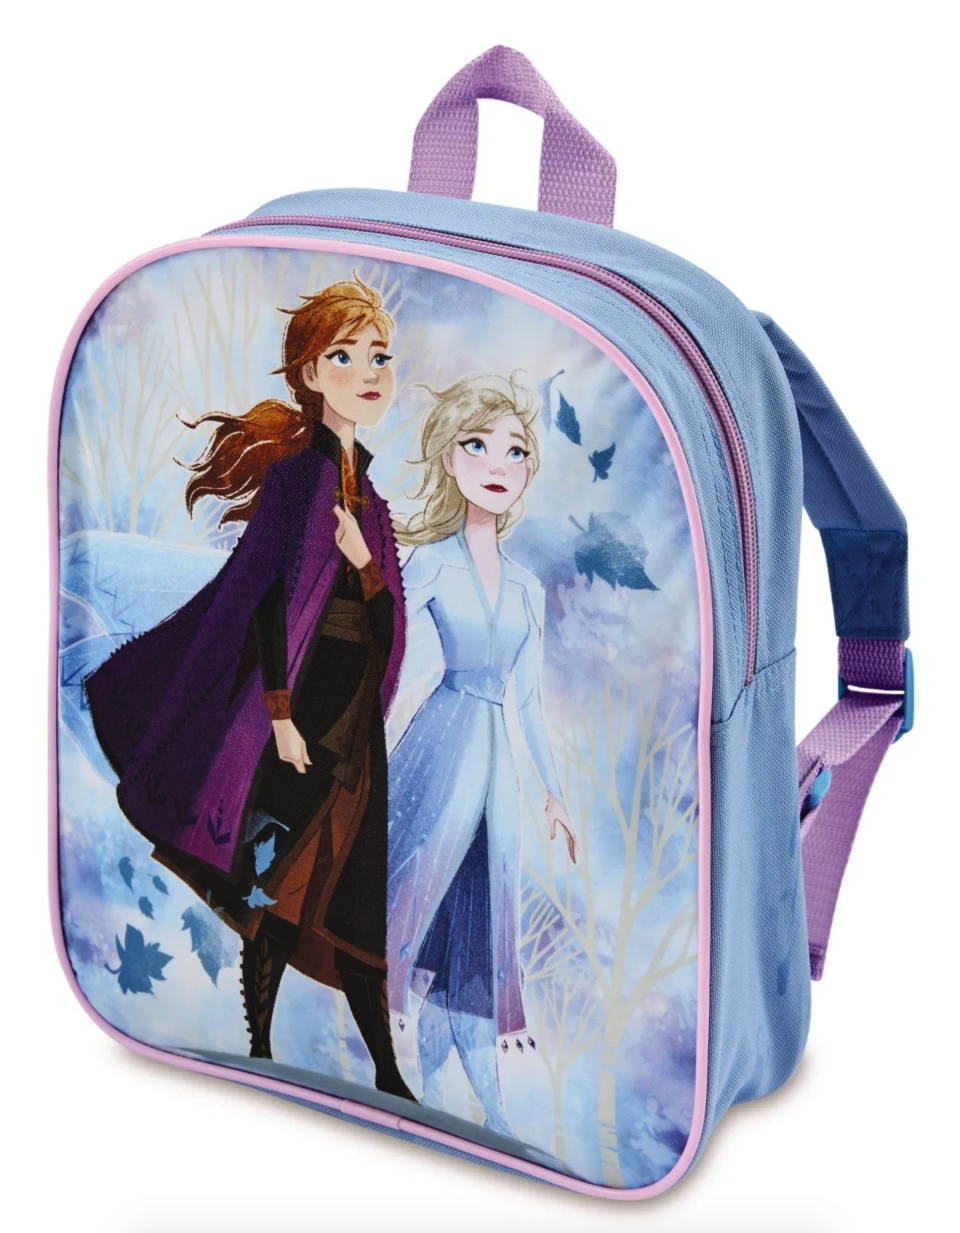 This Frozen 2 backpack is just £3.99. [Photo: Aldi]